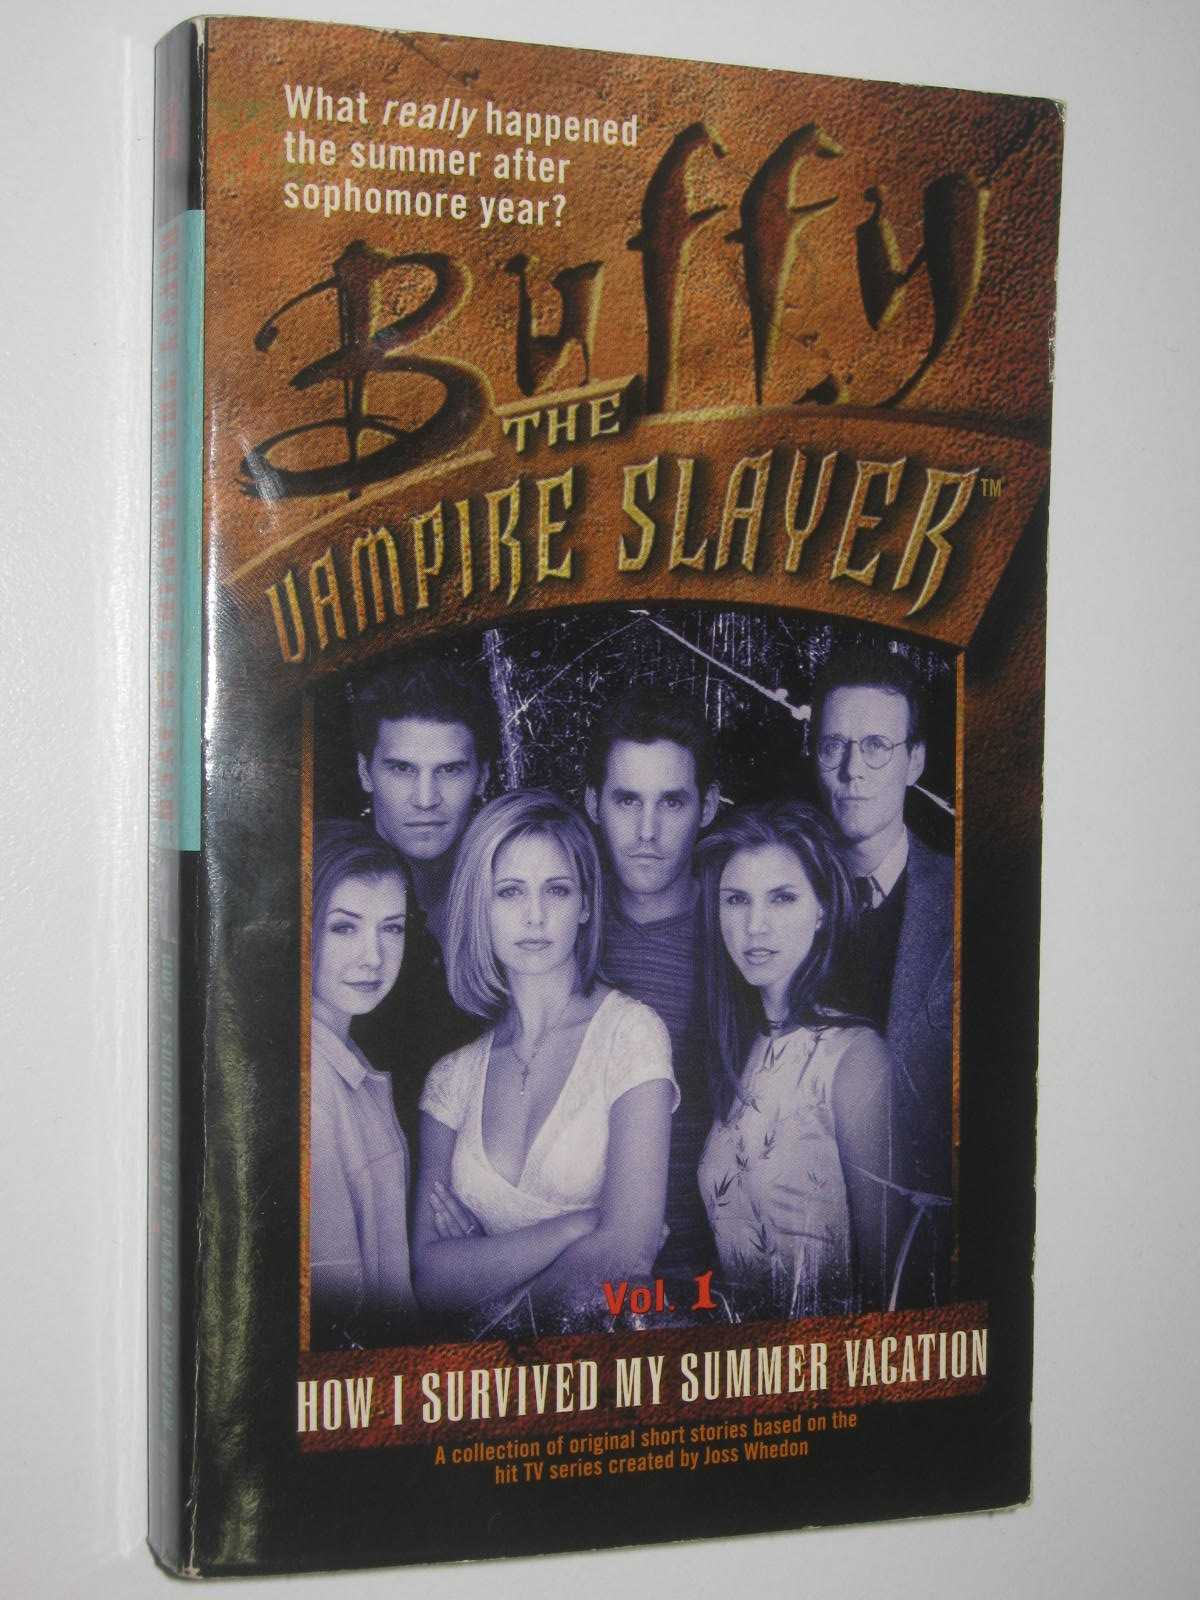 Image for How I Survived My Summer Vacation - Buffy the Vampire Slayer Series